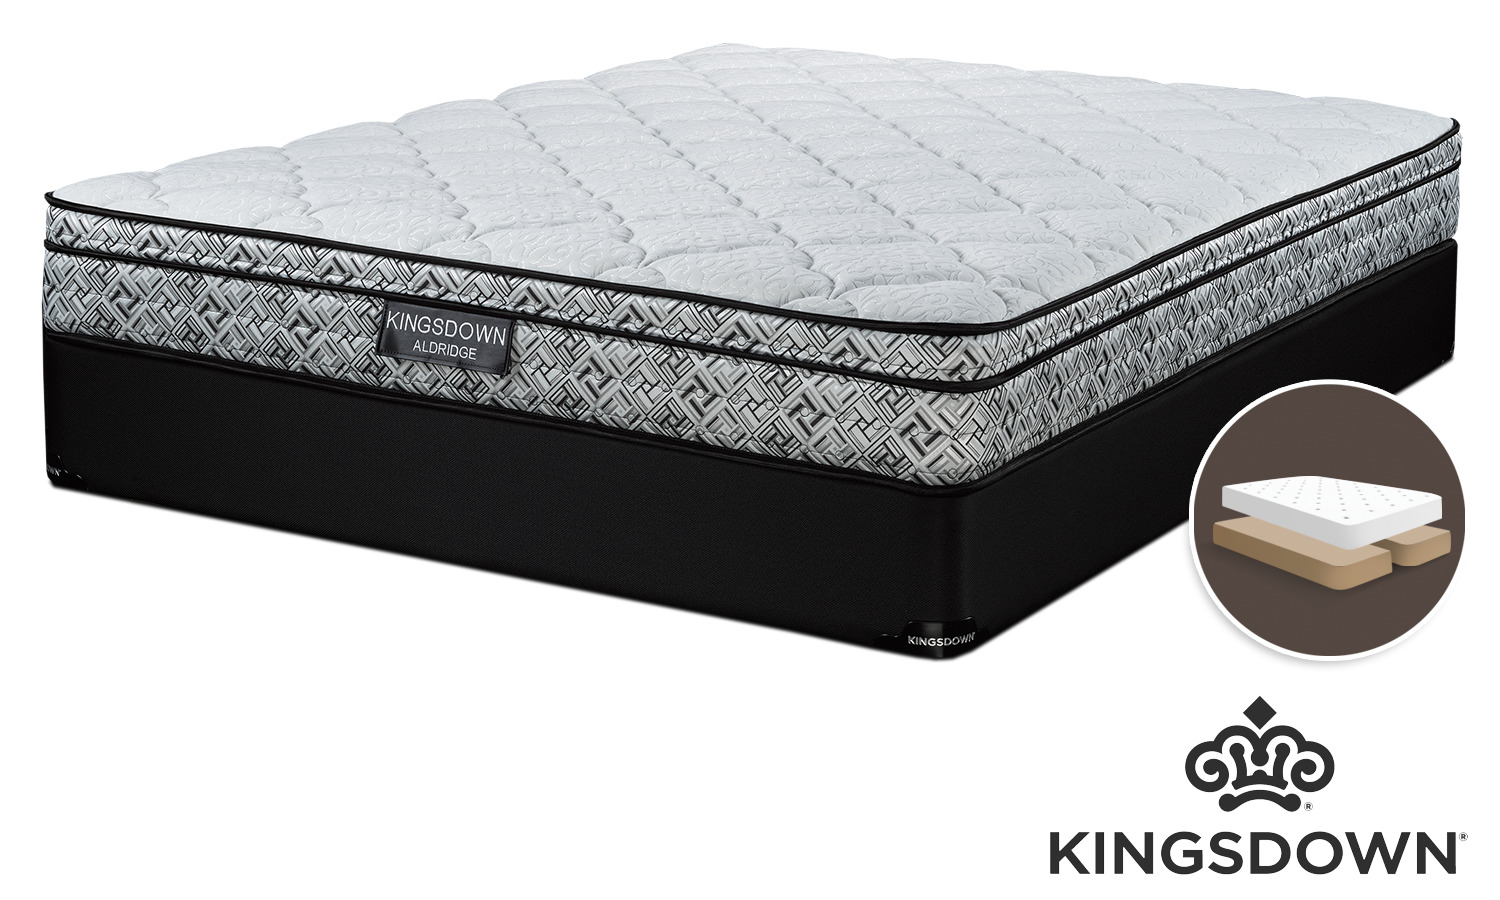 Kingsdown Aldridge Cushion Firm Queen Mattress and Split Boxspring Set